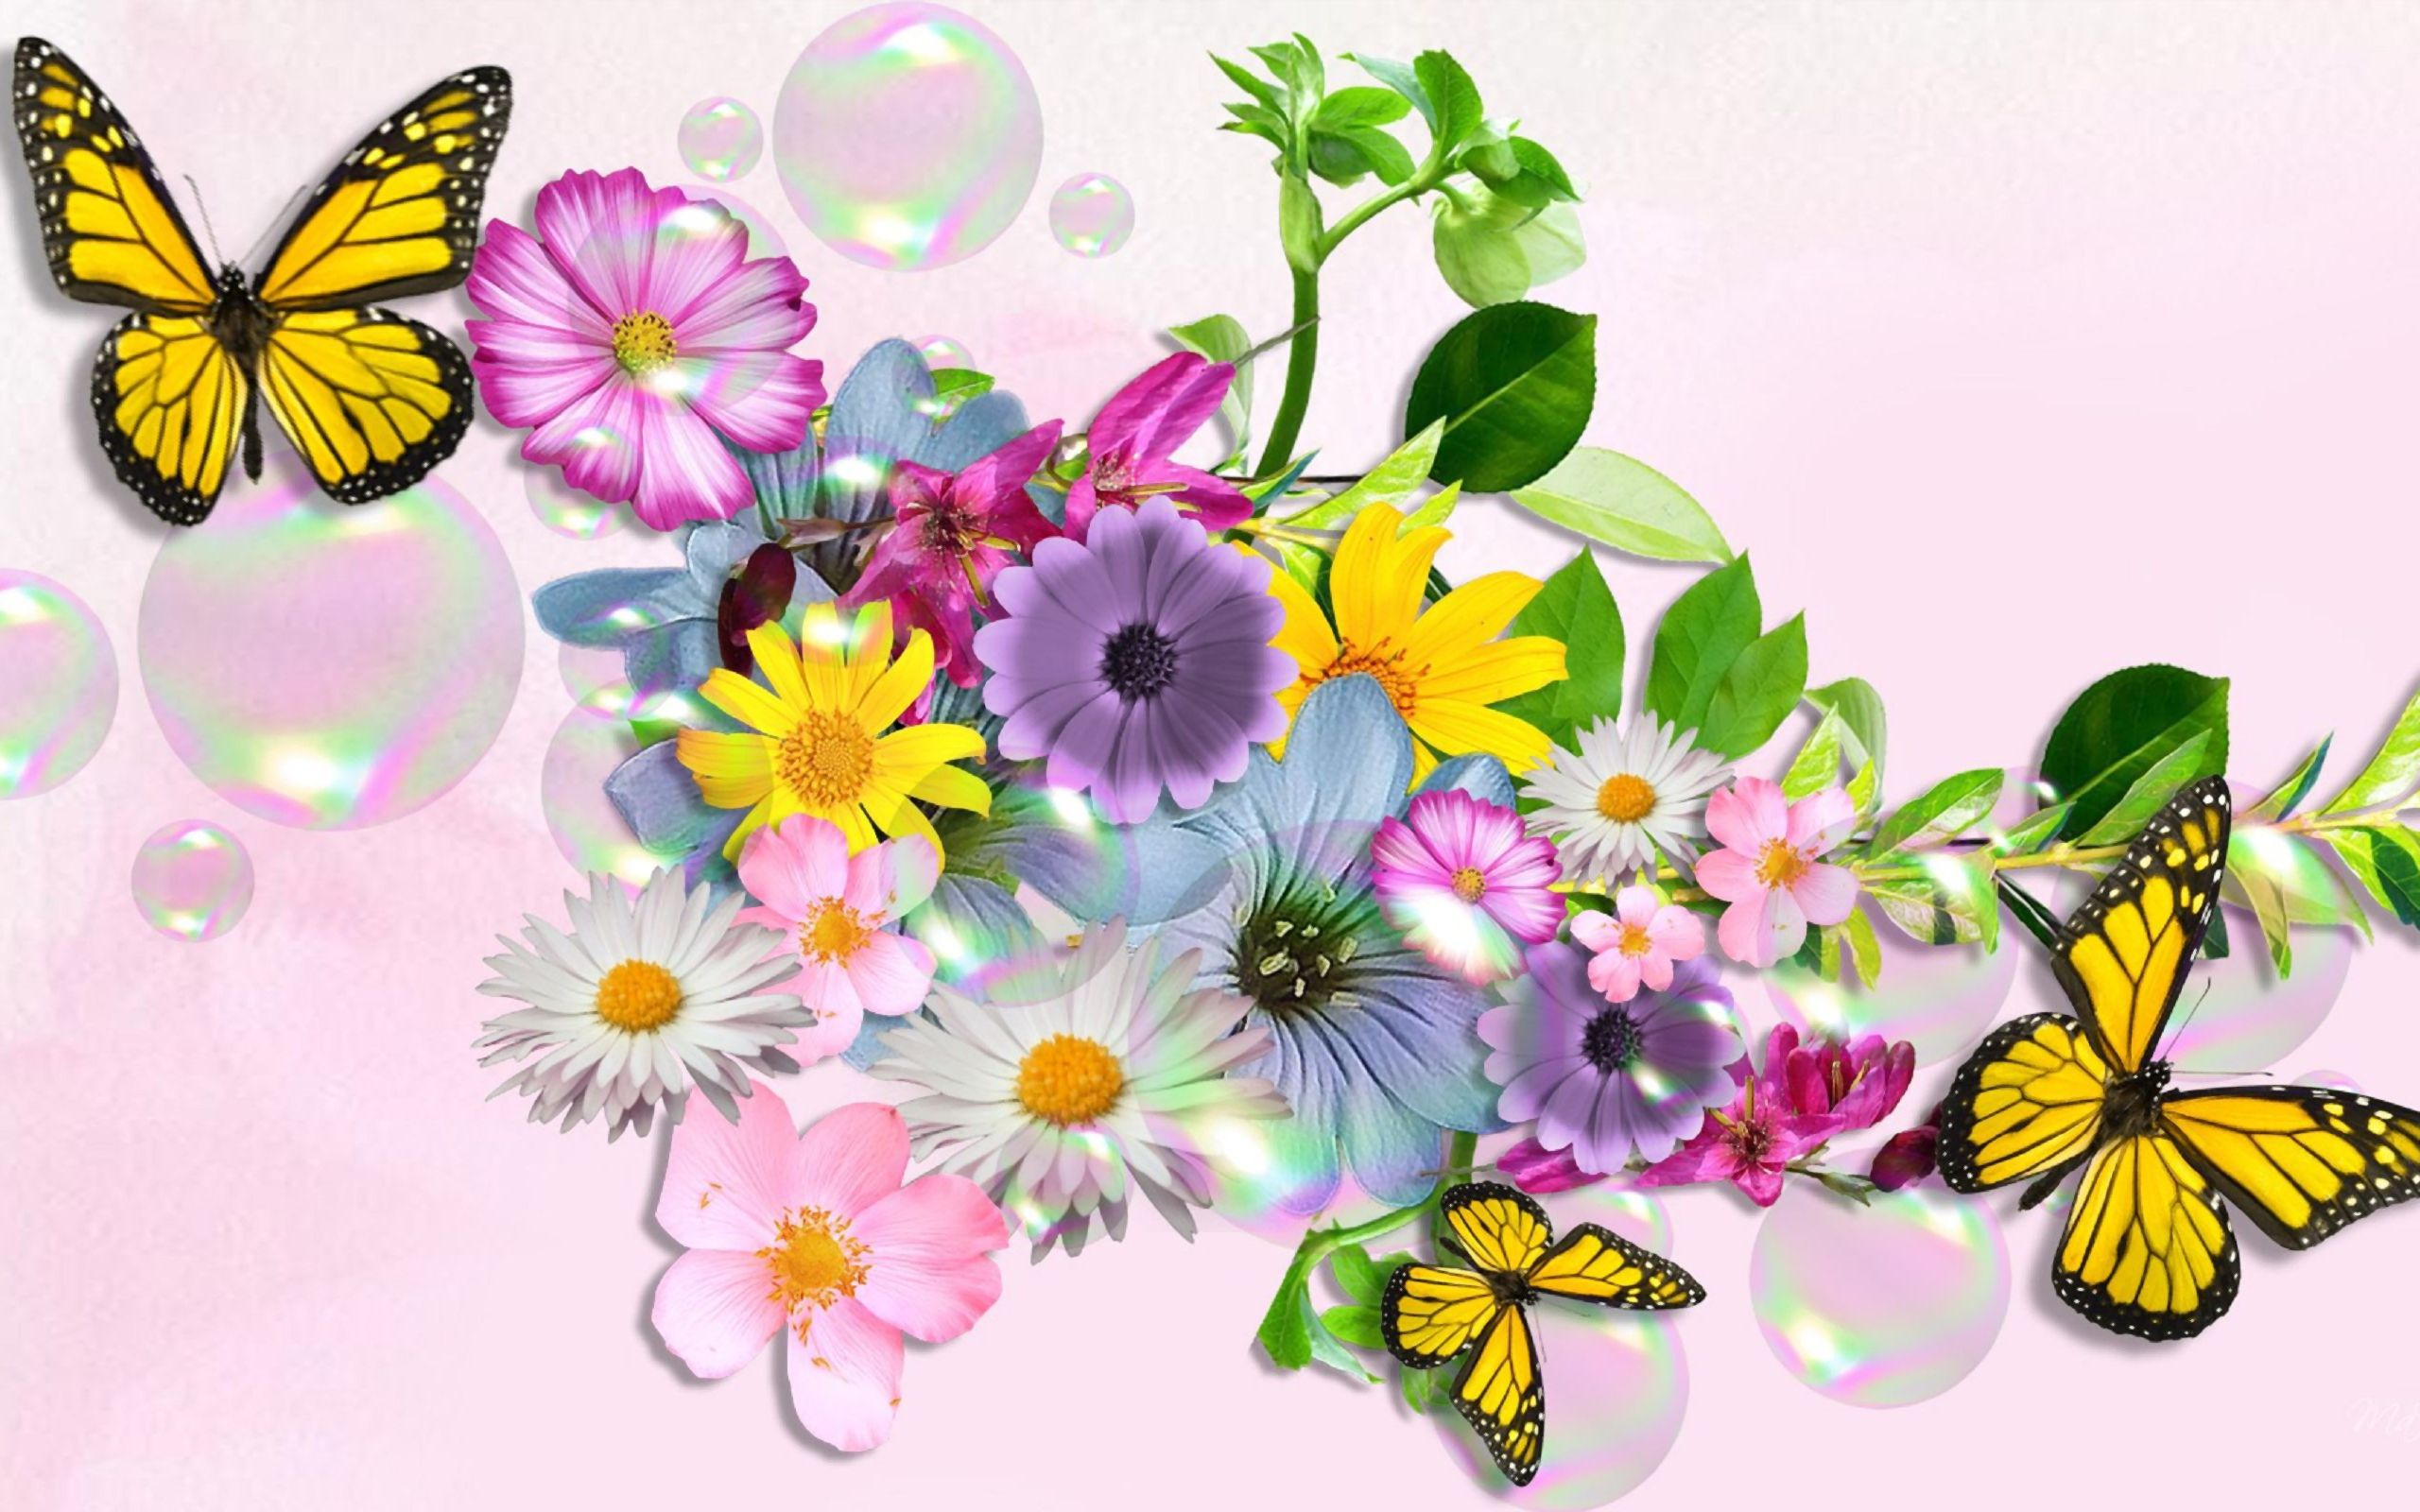 wallpapers of flowers and butterflies